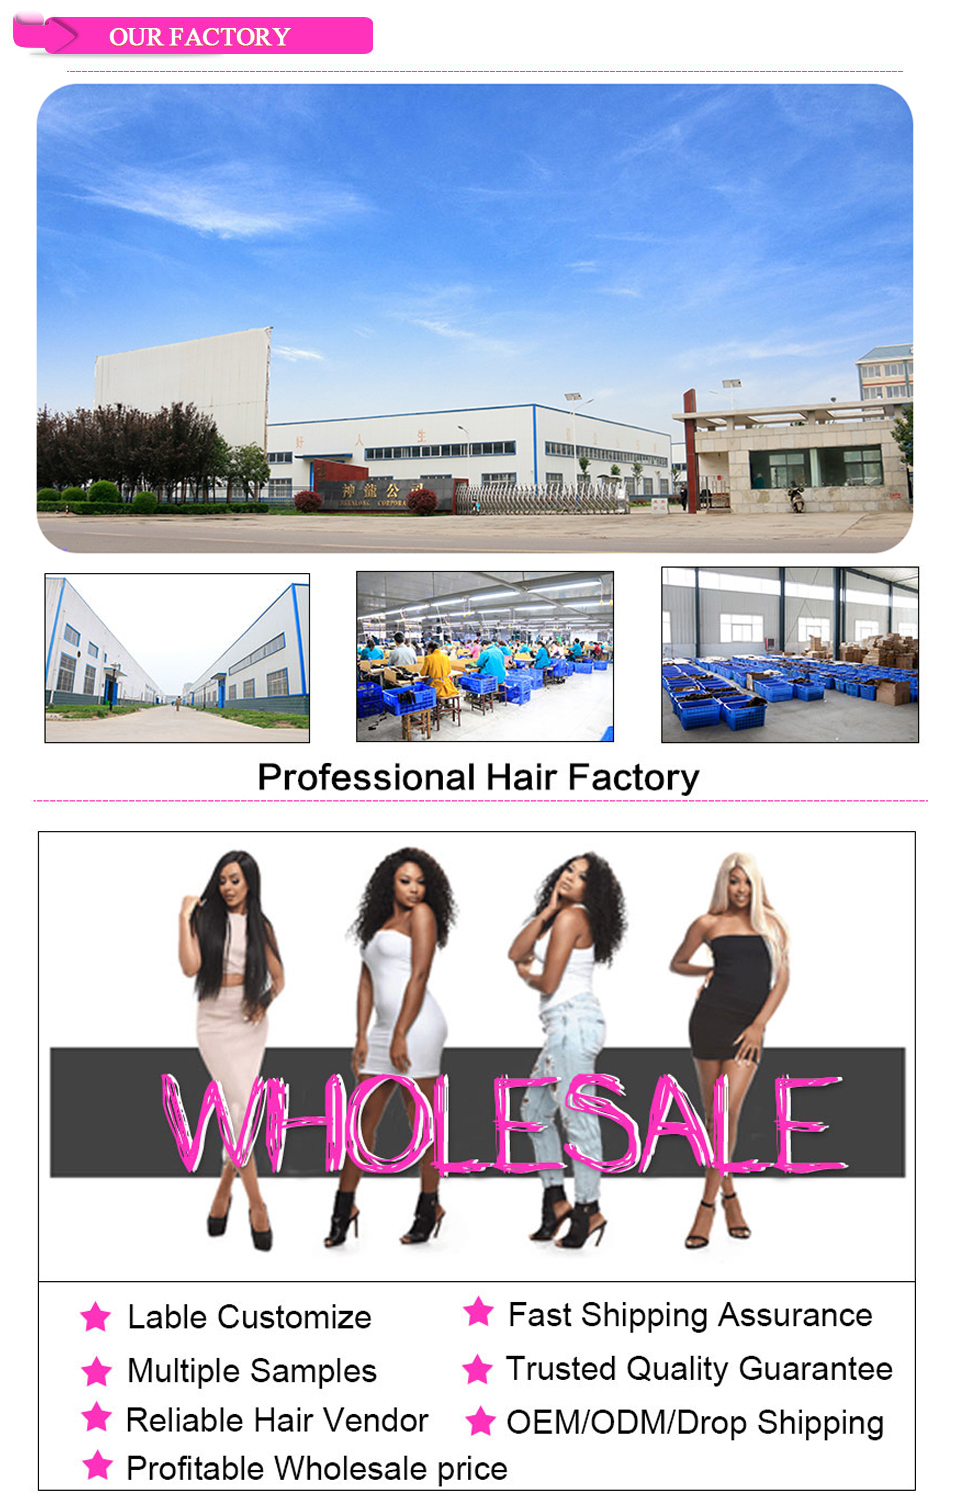 X-Elements Hair Brazilian Jerry Curly Wig 100% Human Hair Non Lace Wig Non-Remy 8 inches Short Human Hair Machine Made Wigs For Women (13)